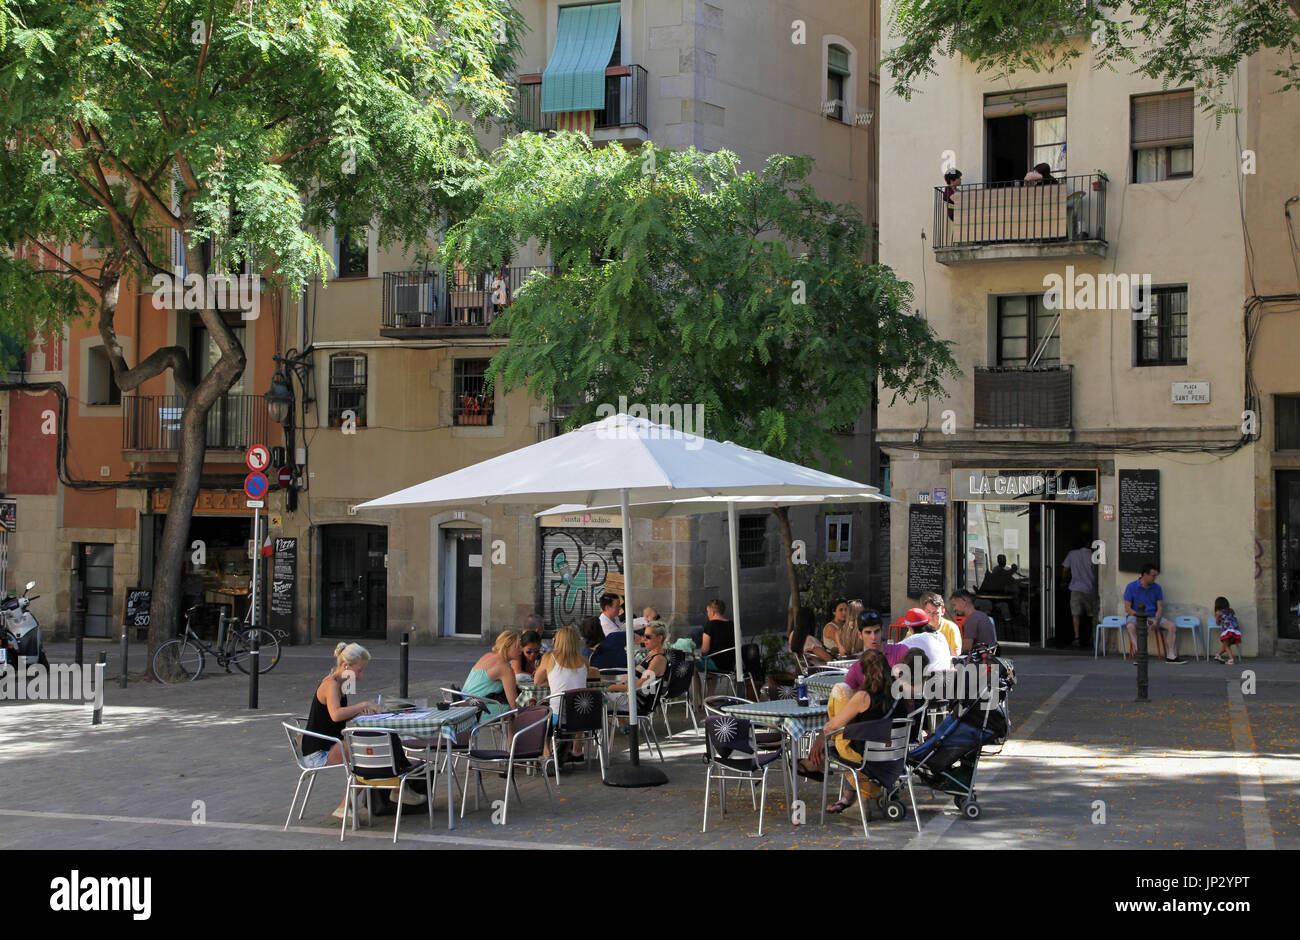 Outdoor cafe and tourists at La Candela Restaurant in Barcelona.Placa de Sant Pere.Spain - Stock Image